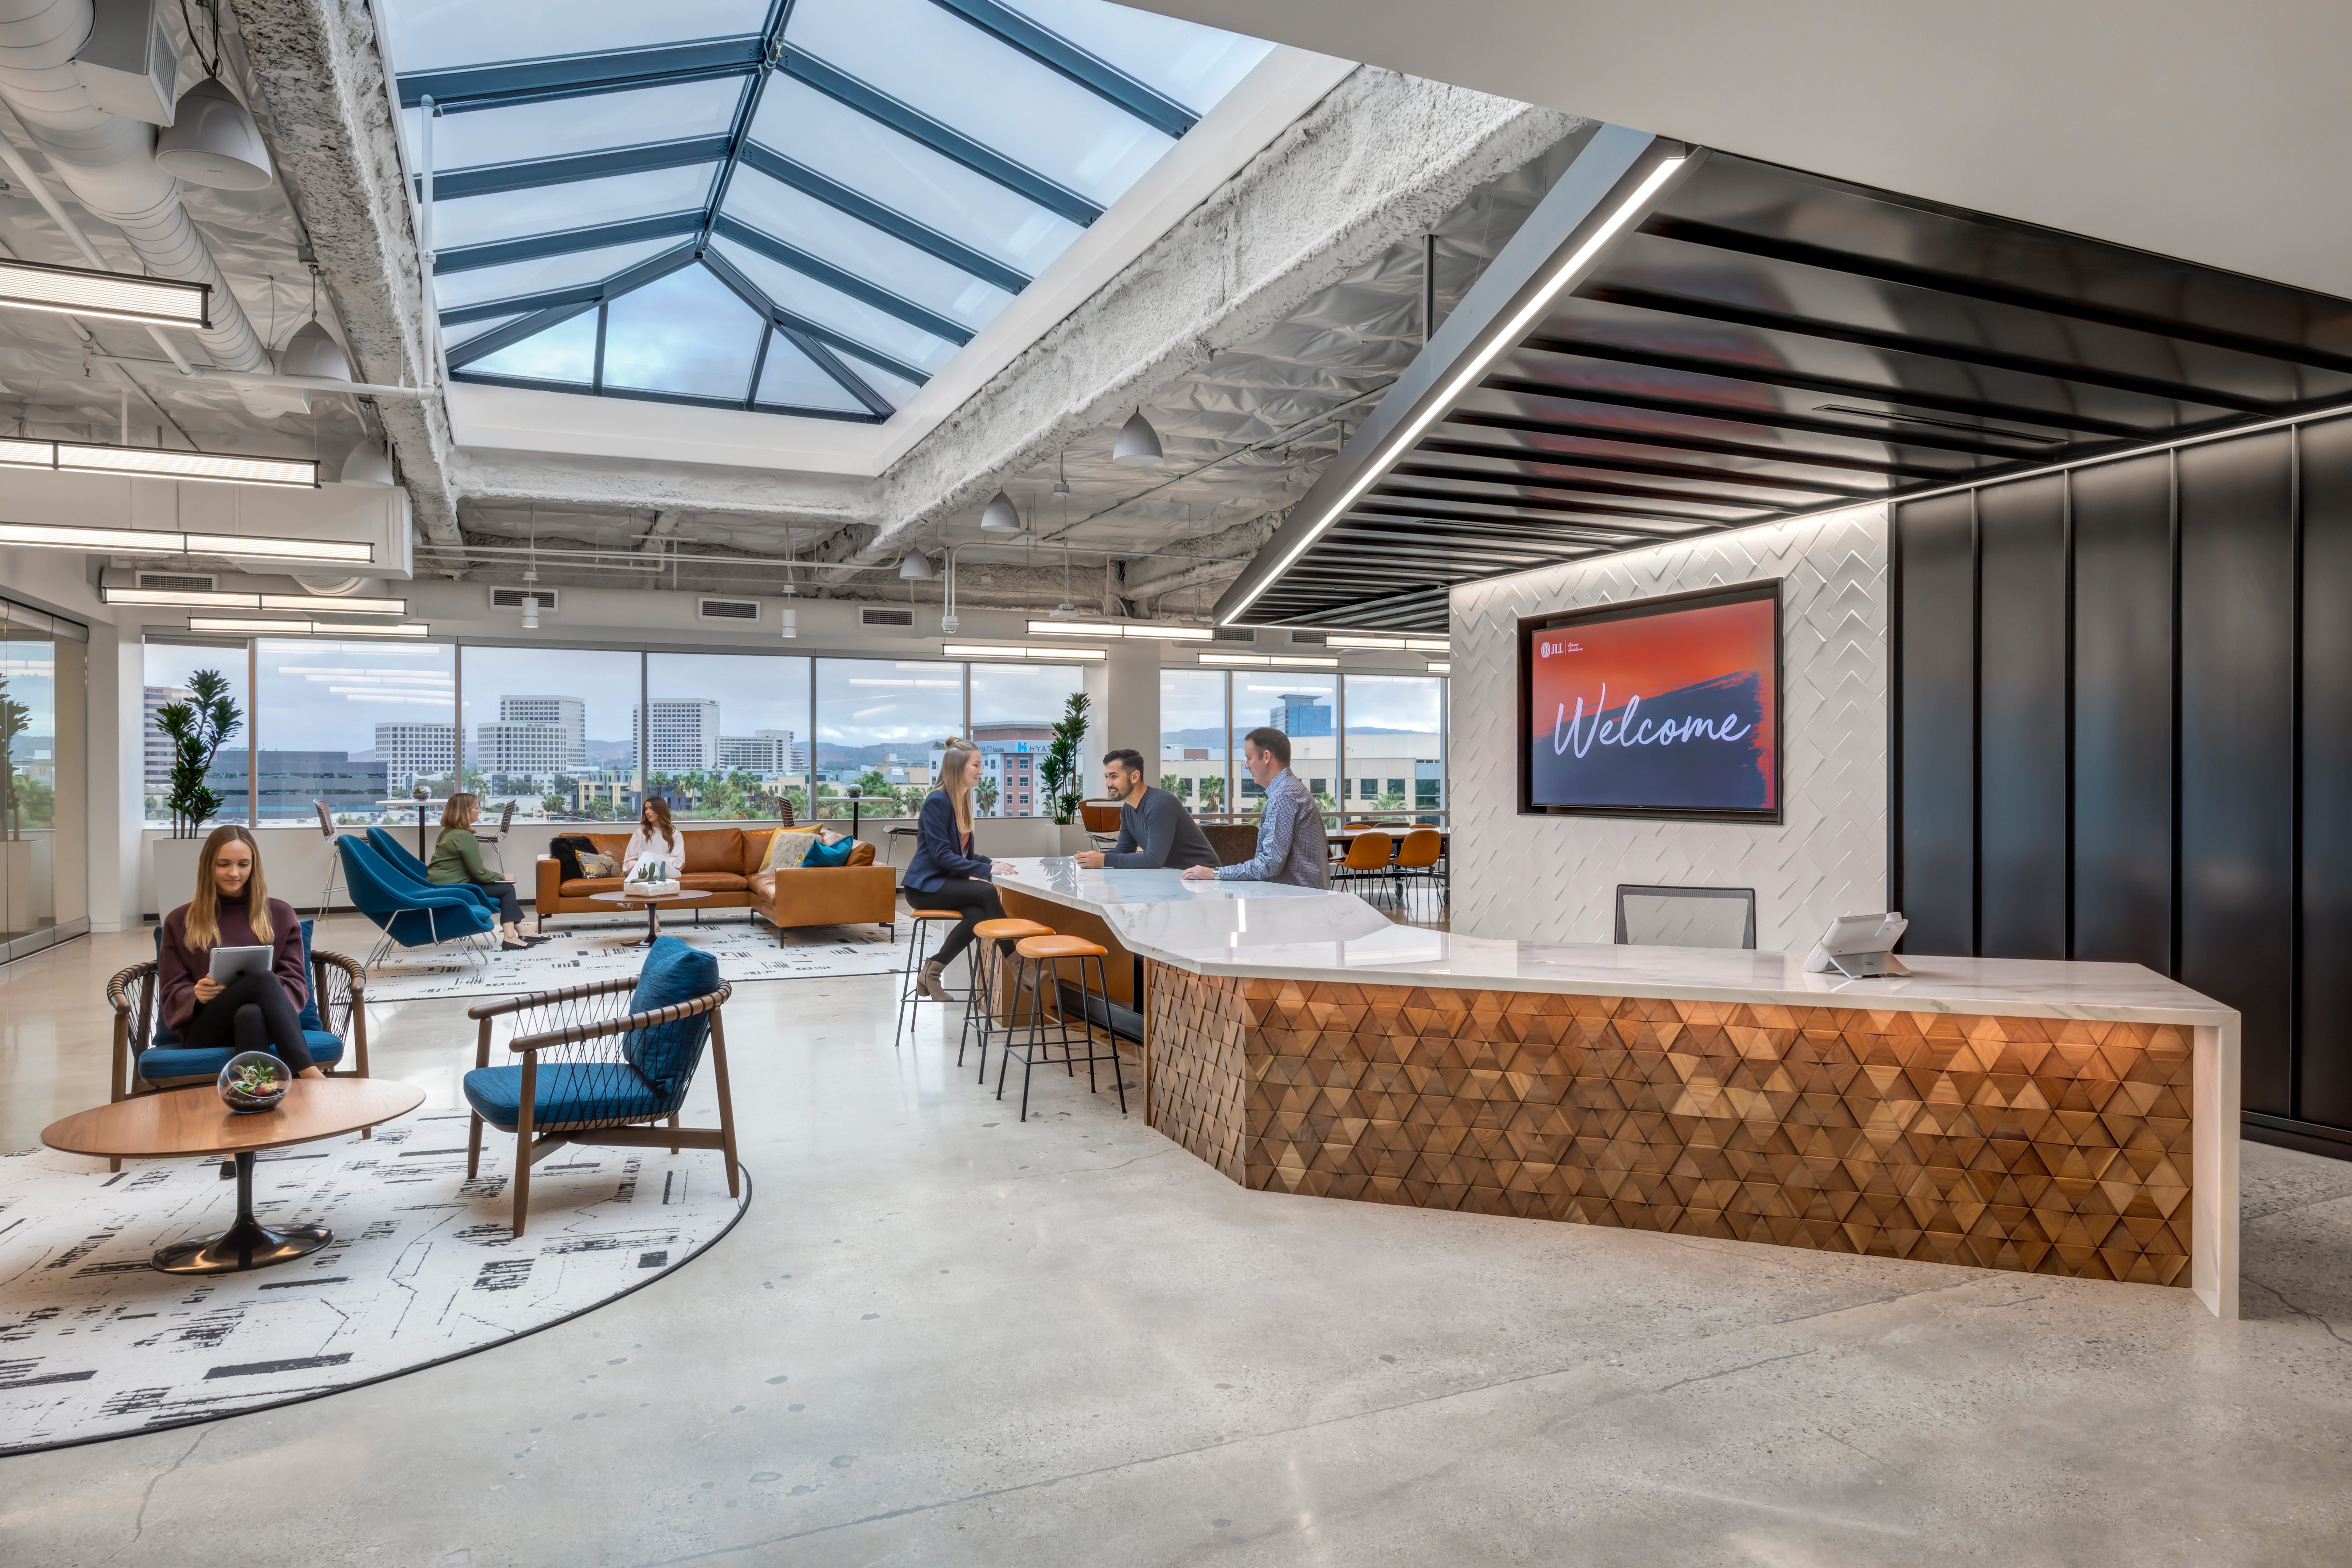 JLL Intersect Irvine - Front desk and Lobby With Skylight